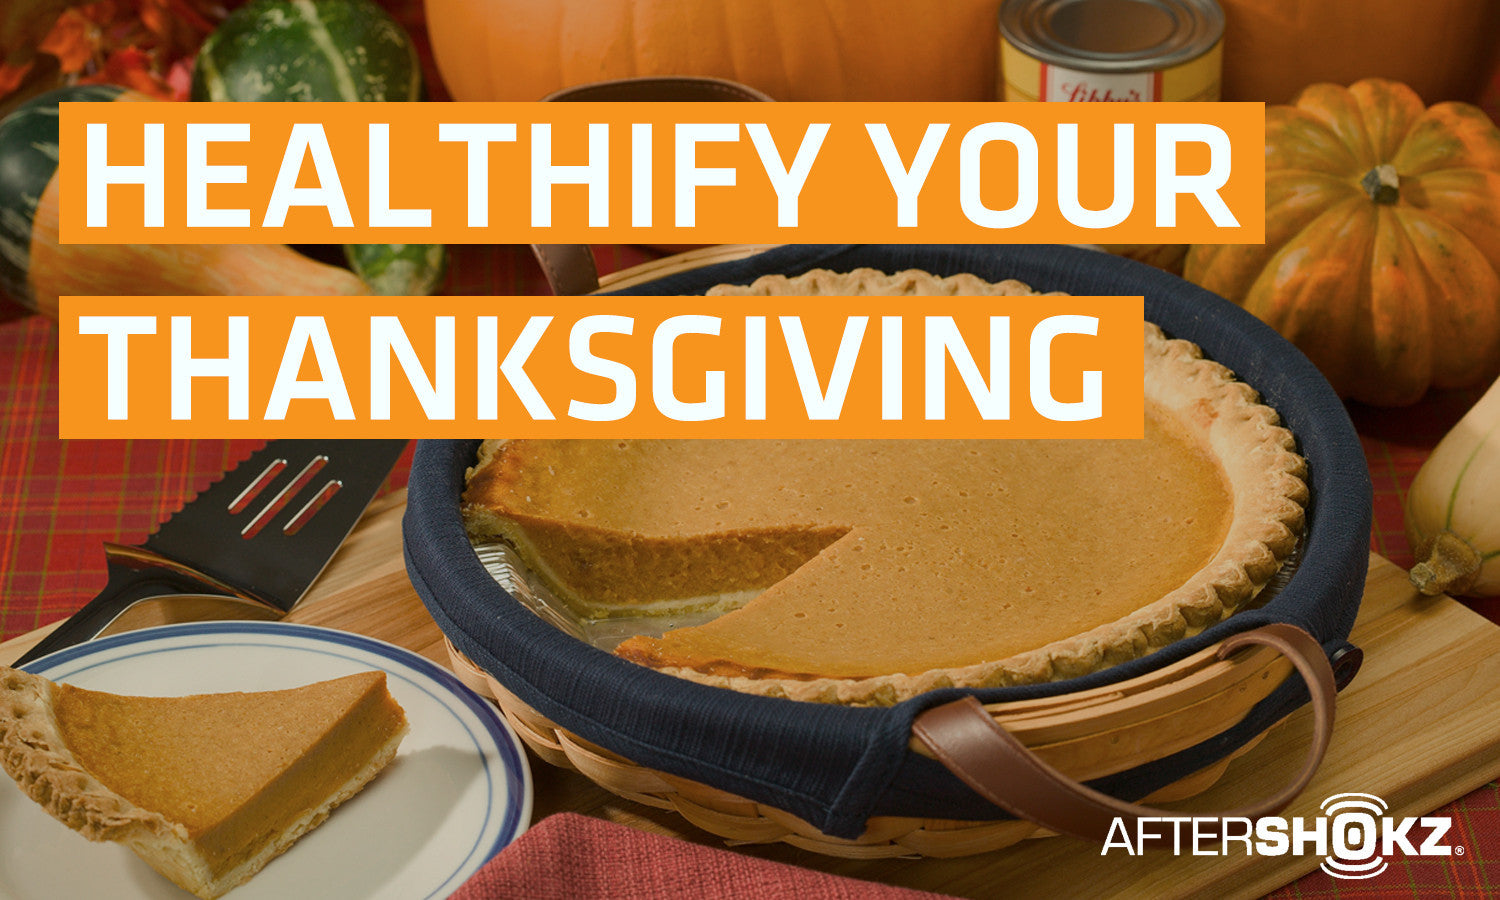 Healthify Your Thanksgiving